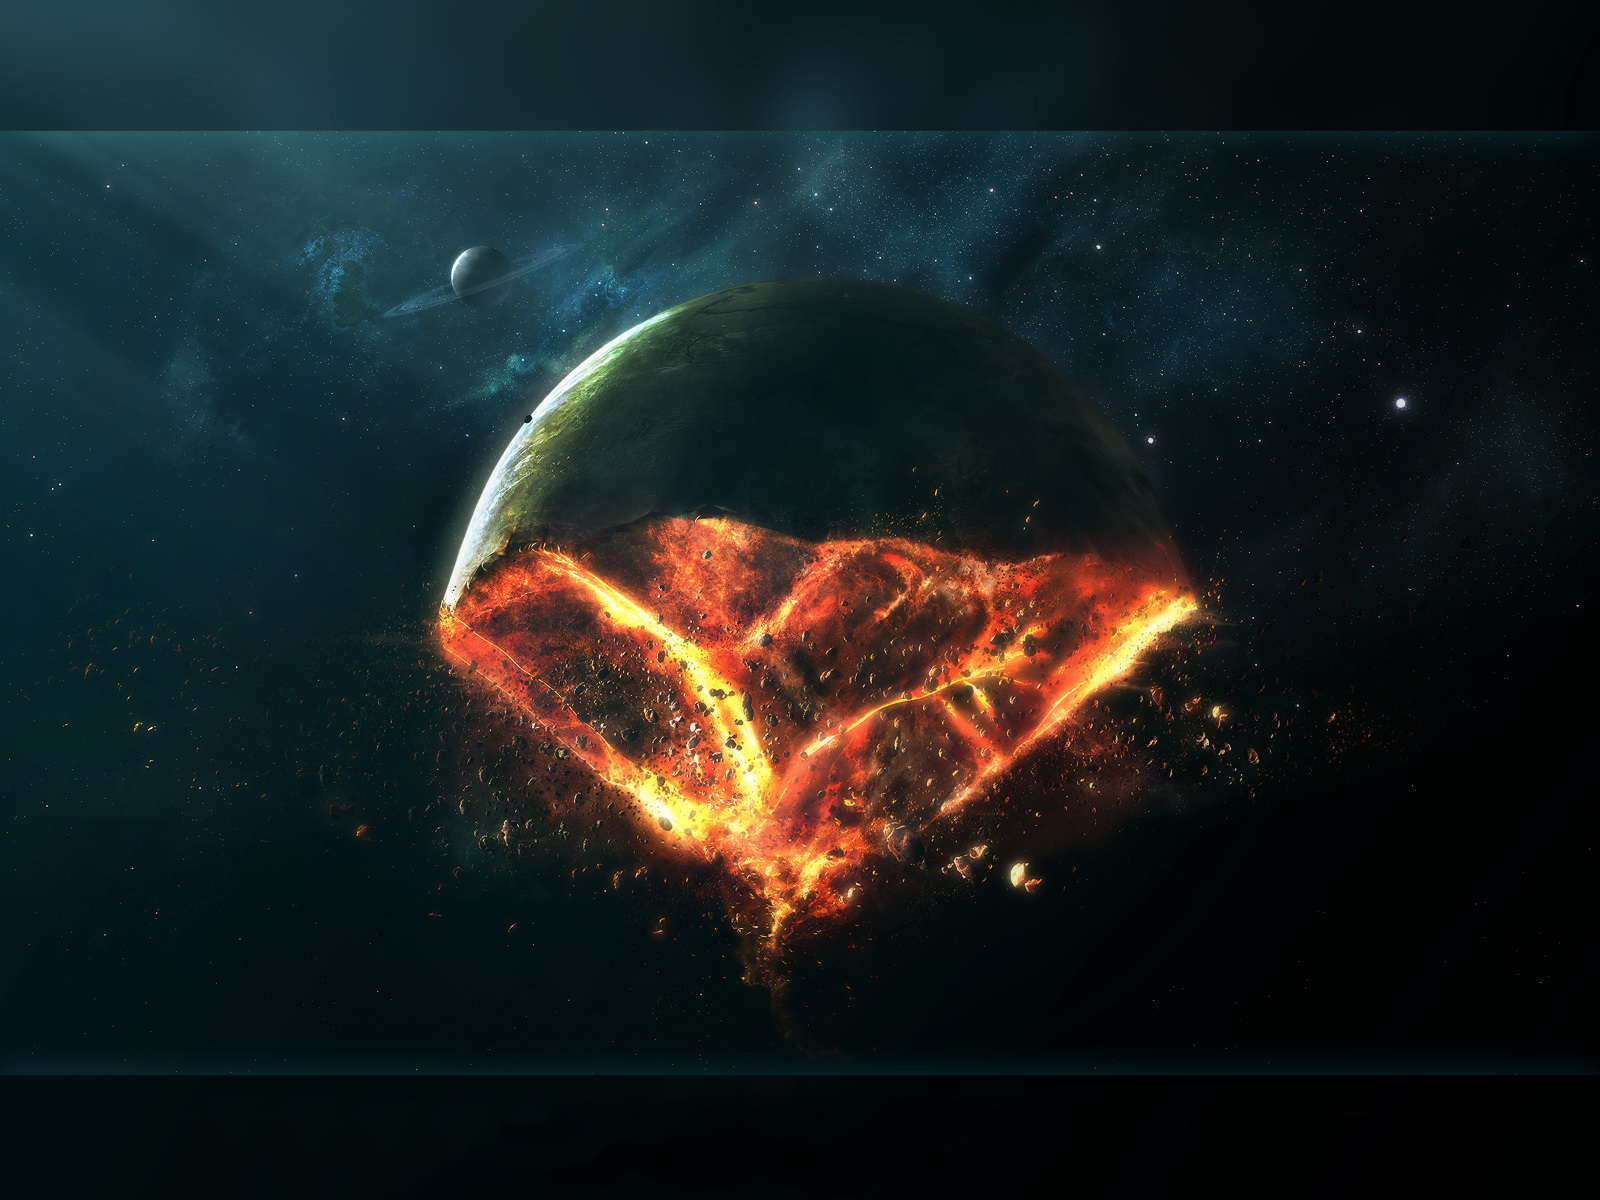 1600x1200 Exploded planet desktop PC and Mac wallpaper